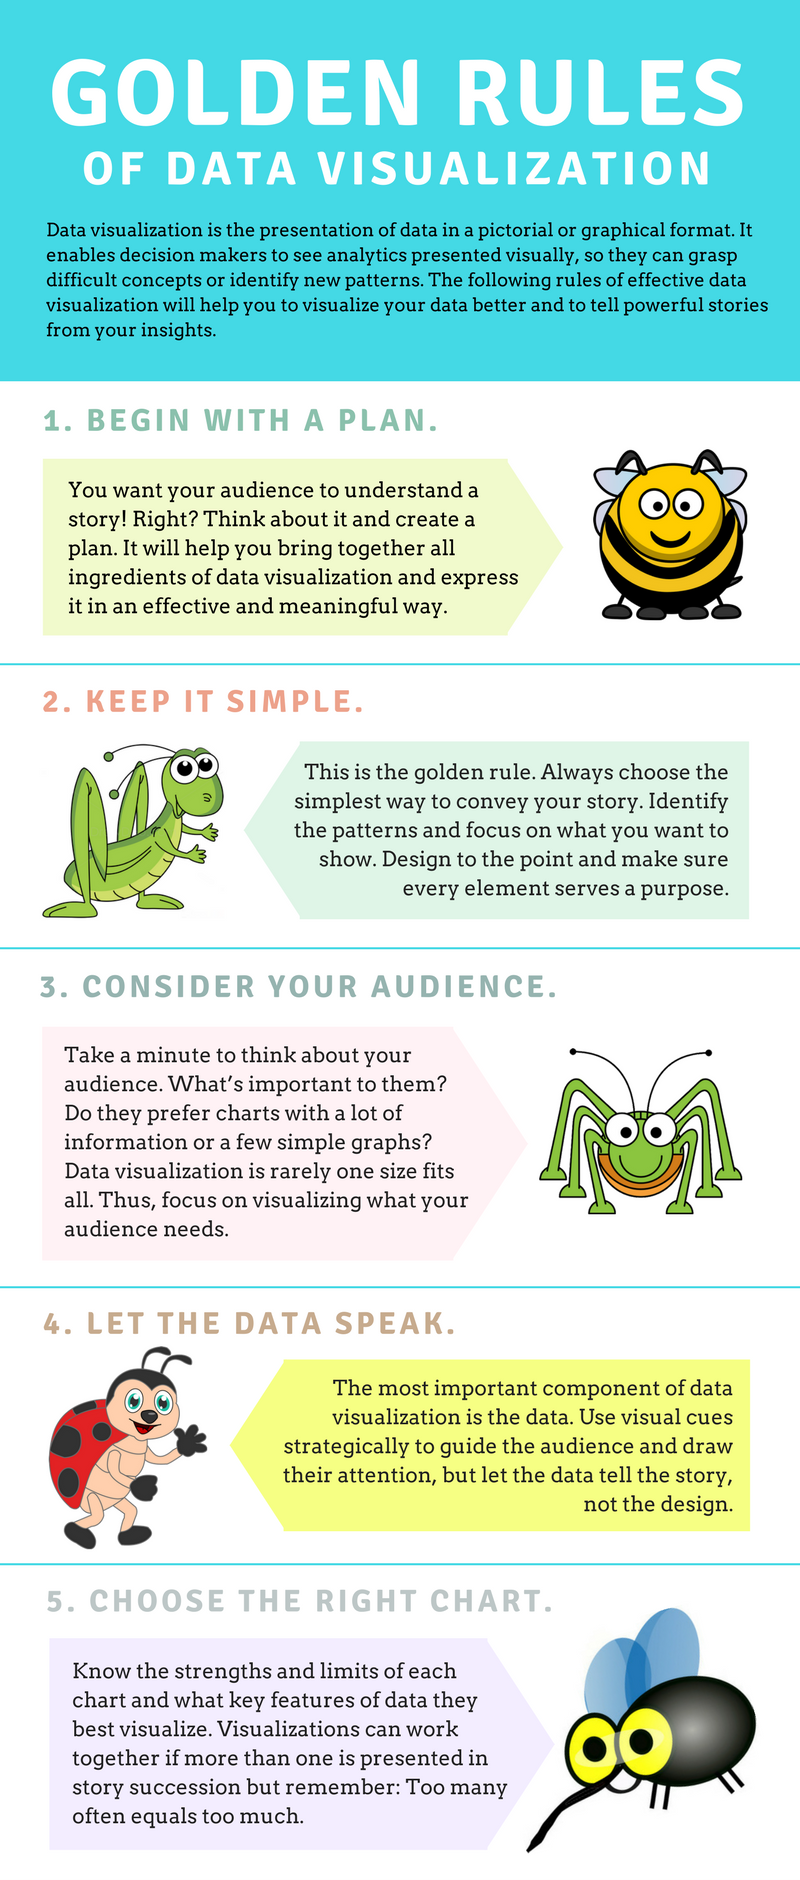 Golden Rules of Data Visualization1